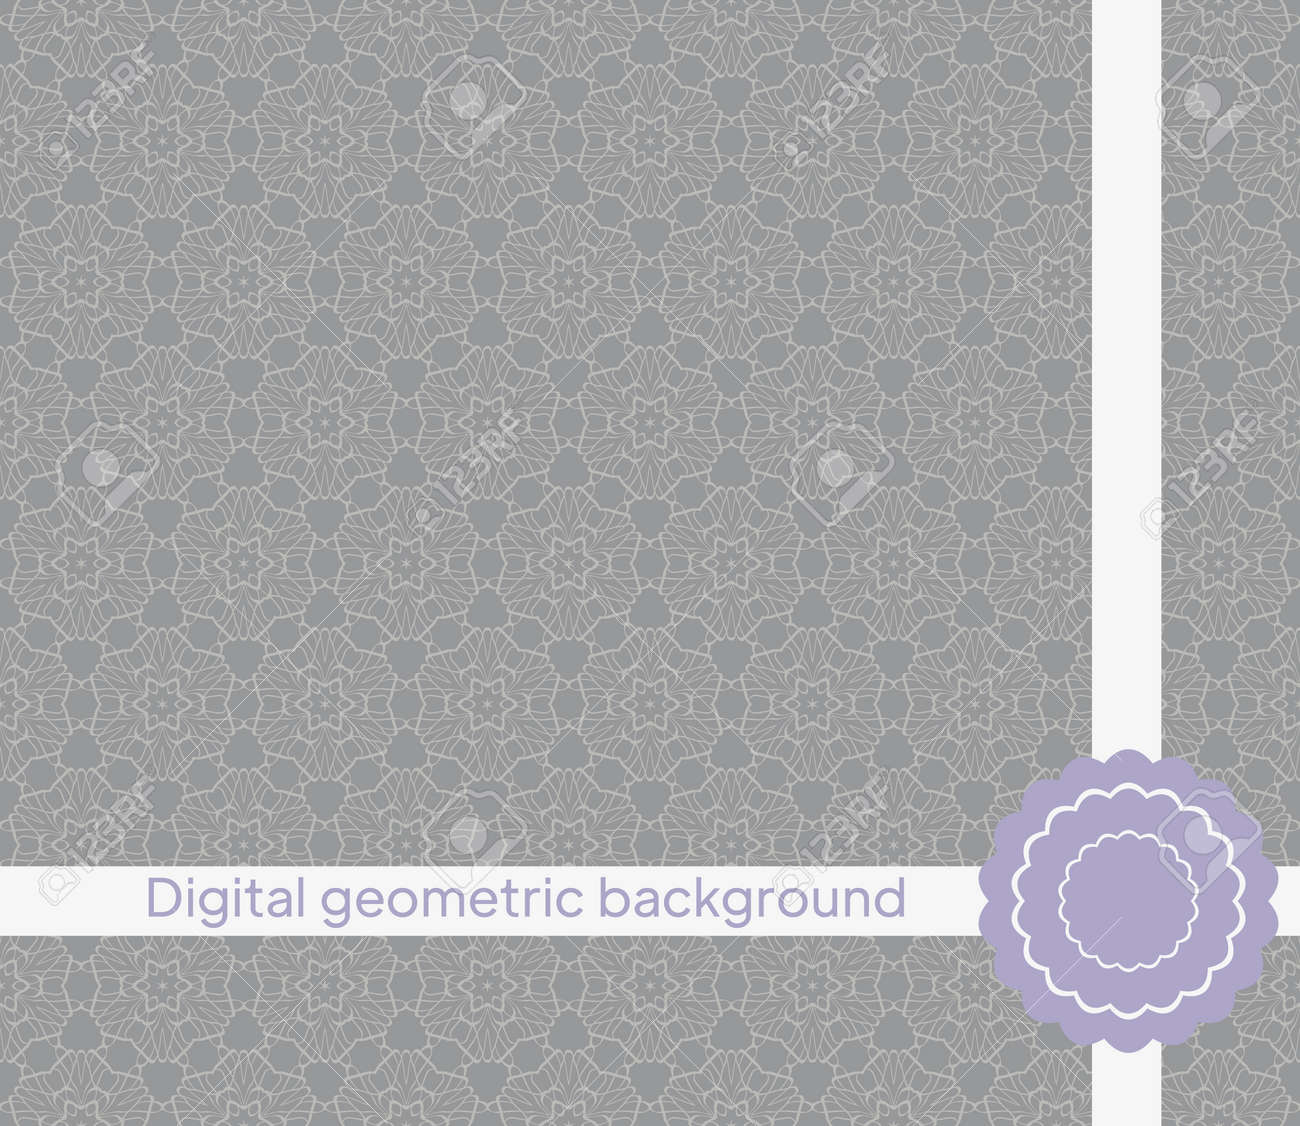 mirror seamless pattern with abstract floral and leave style. Repeating sample figure and line. For modern interiors design, wallpaper, textile industry. Vector illustration - 168017573